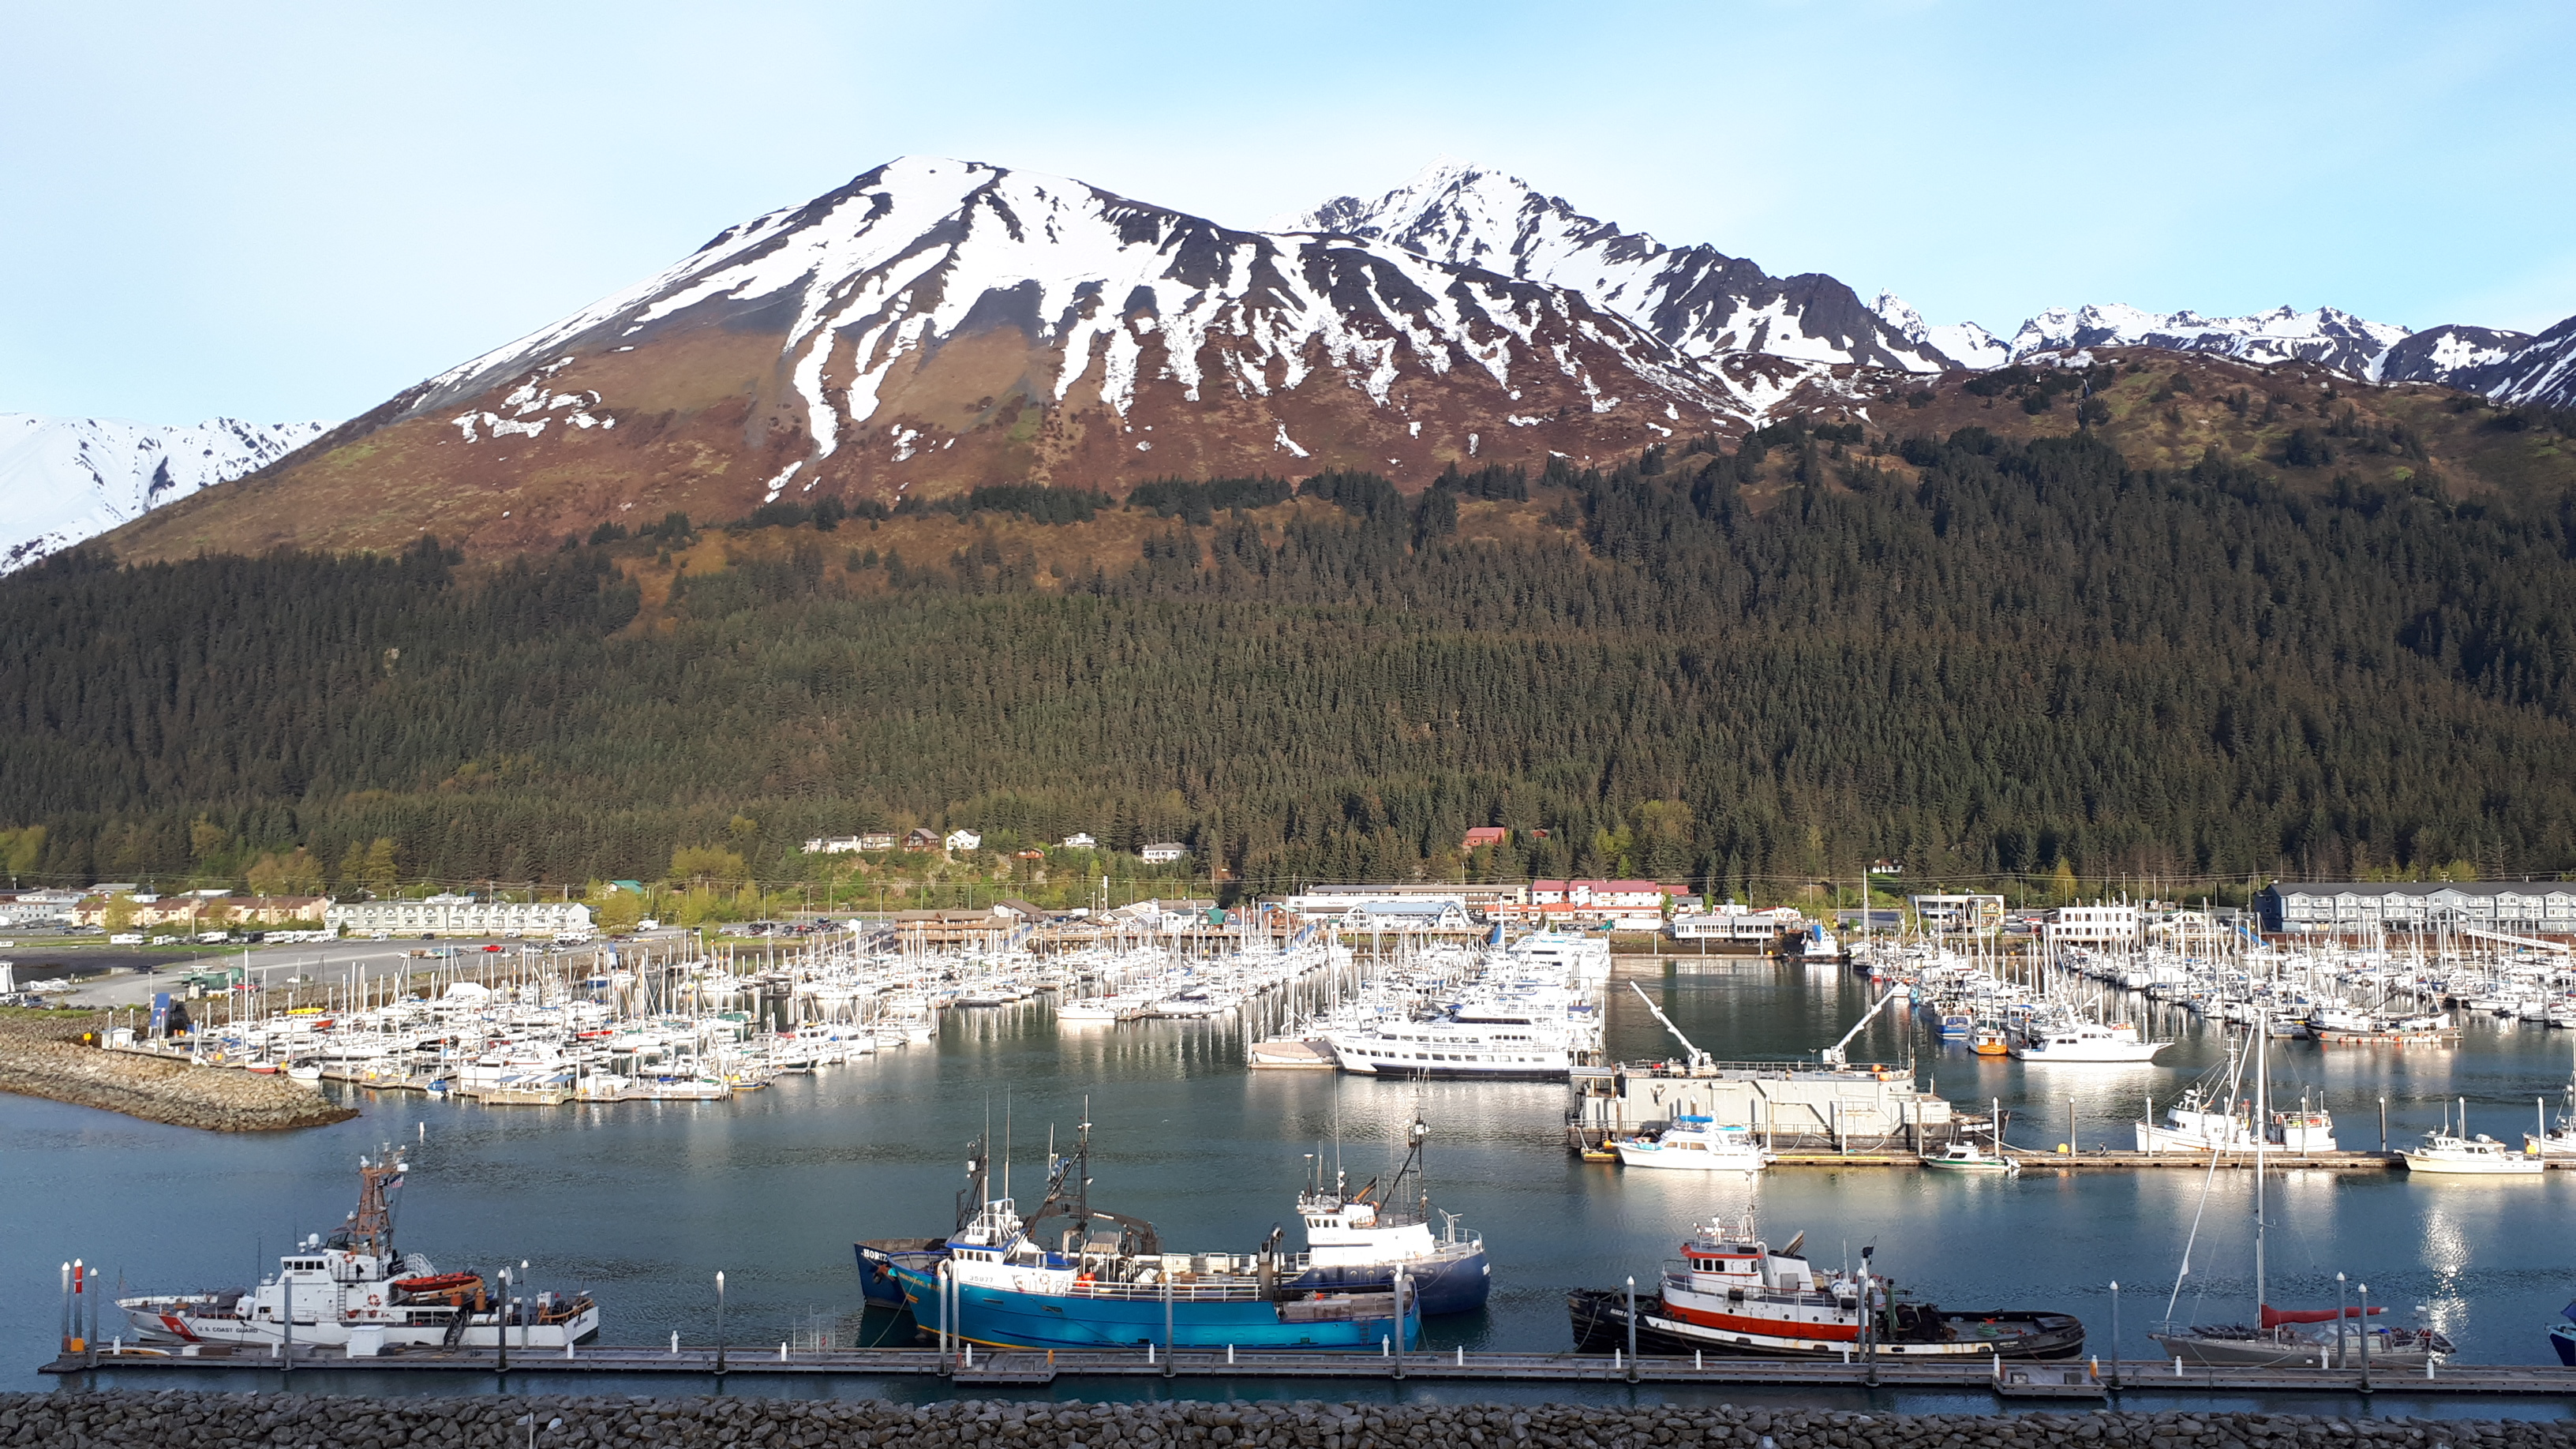 Free download high resolution image - free image free photo free stock image public domain picture -Boat Marina in Seward, Alaska, United States